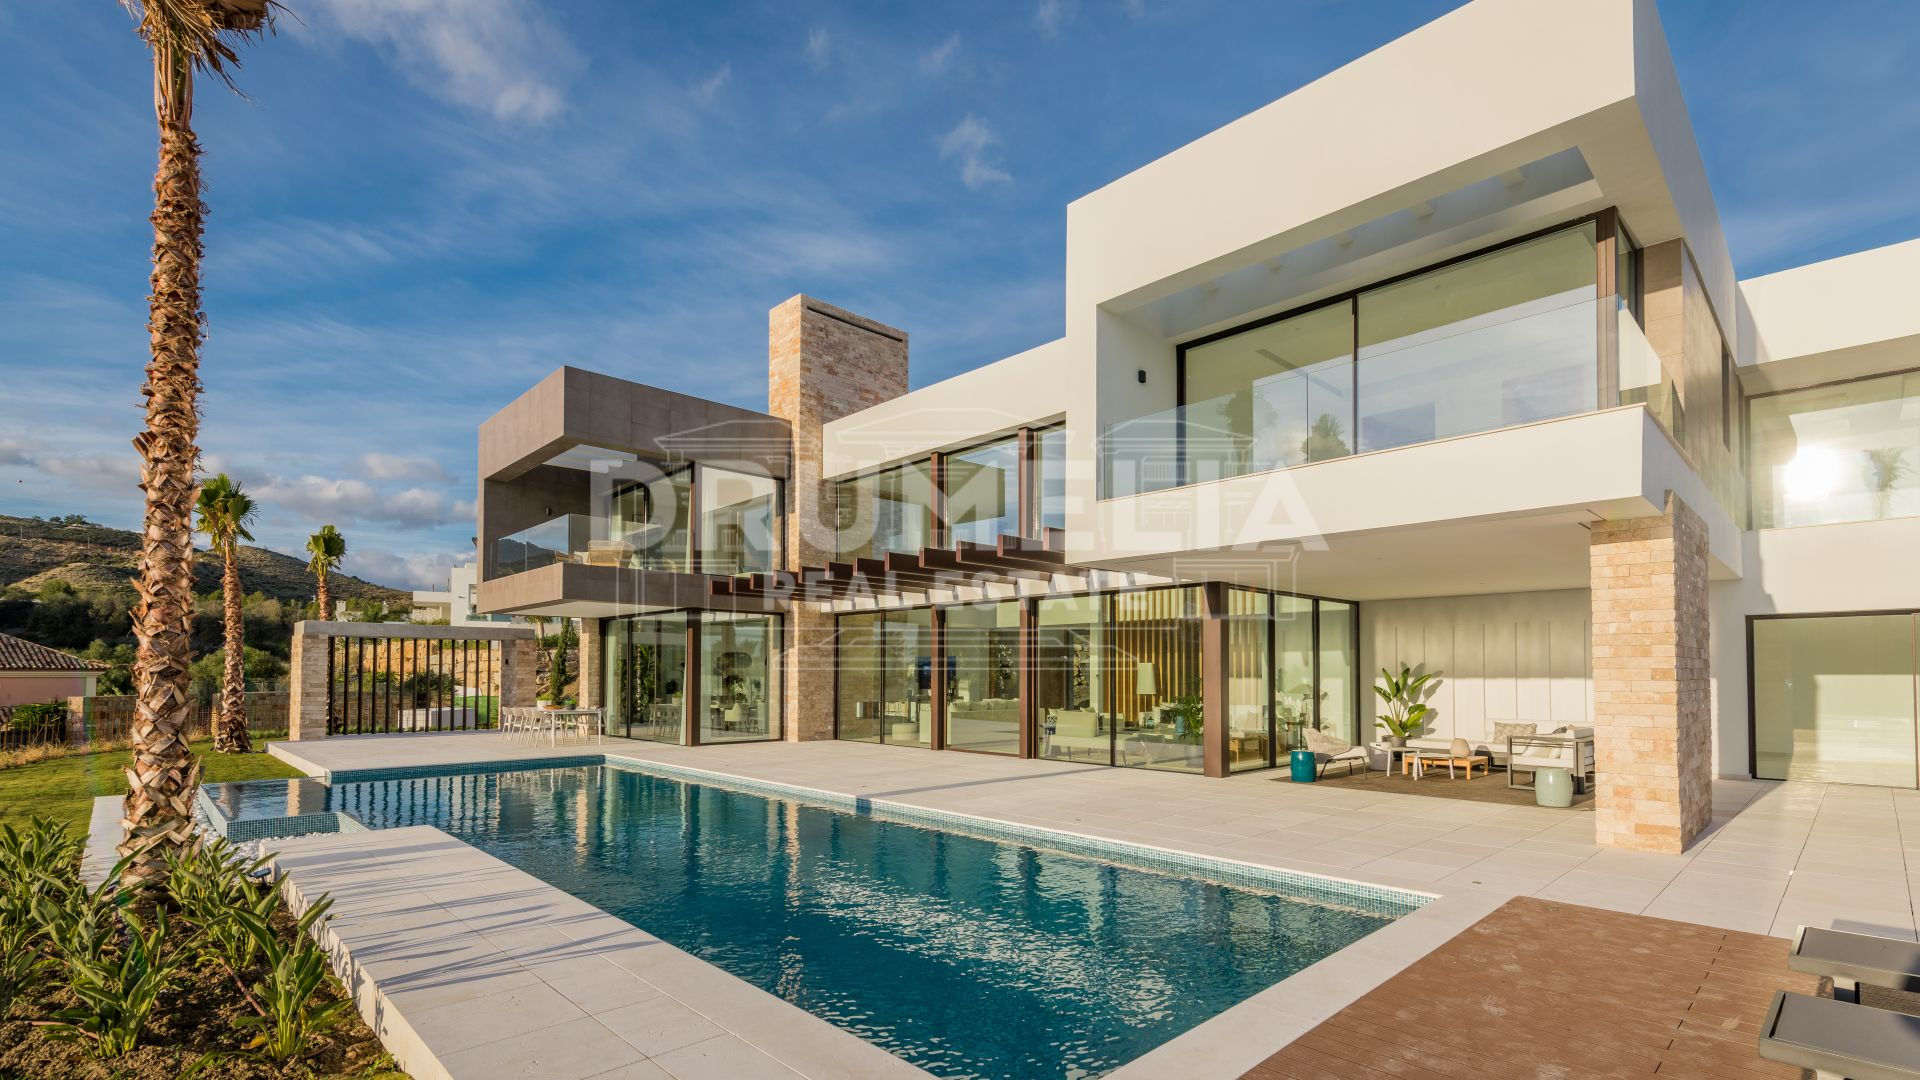 Benahavis, Brand-New Stunning, Chic Contemporary Style Luxury Villa in La Alqueria